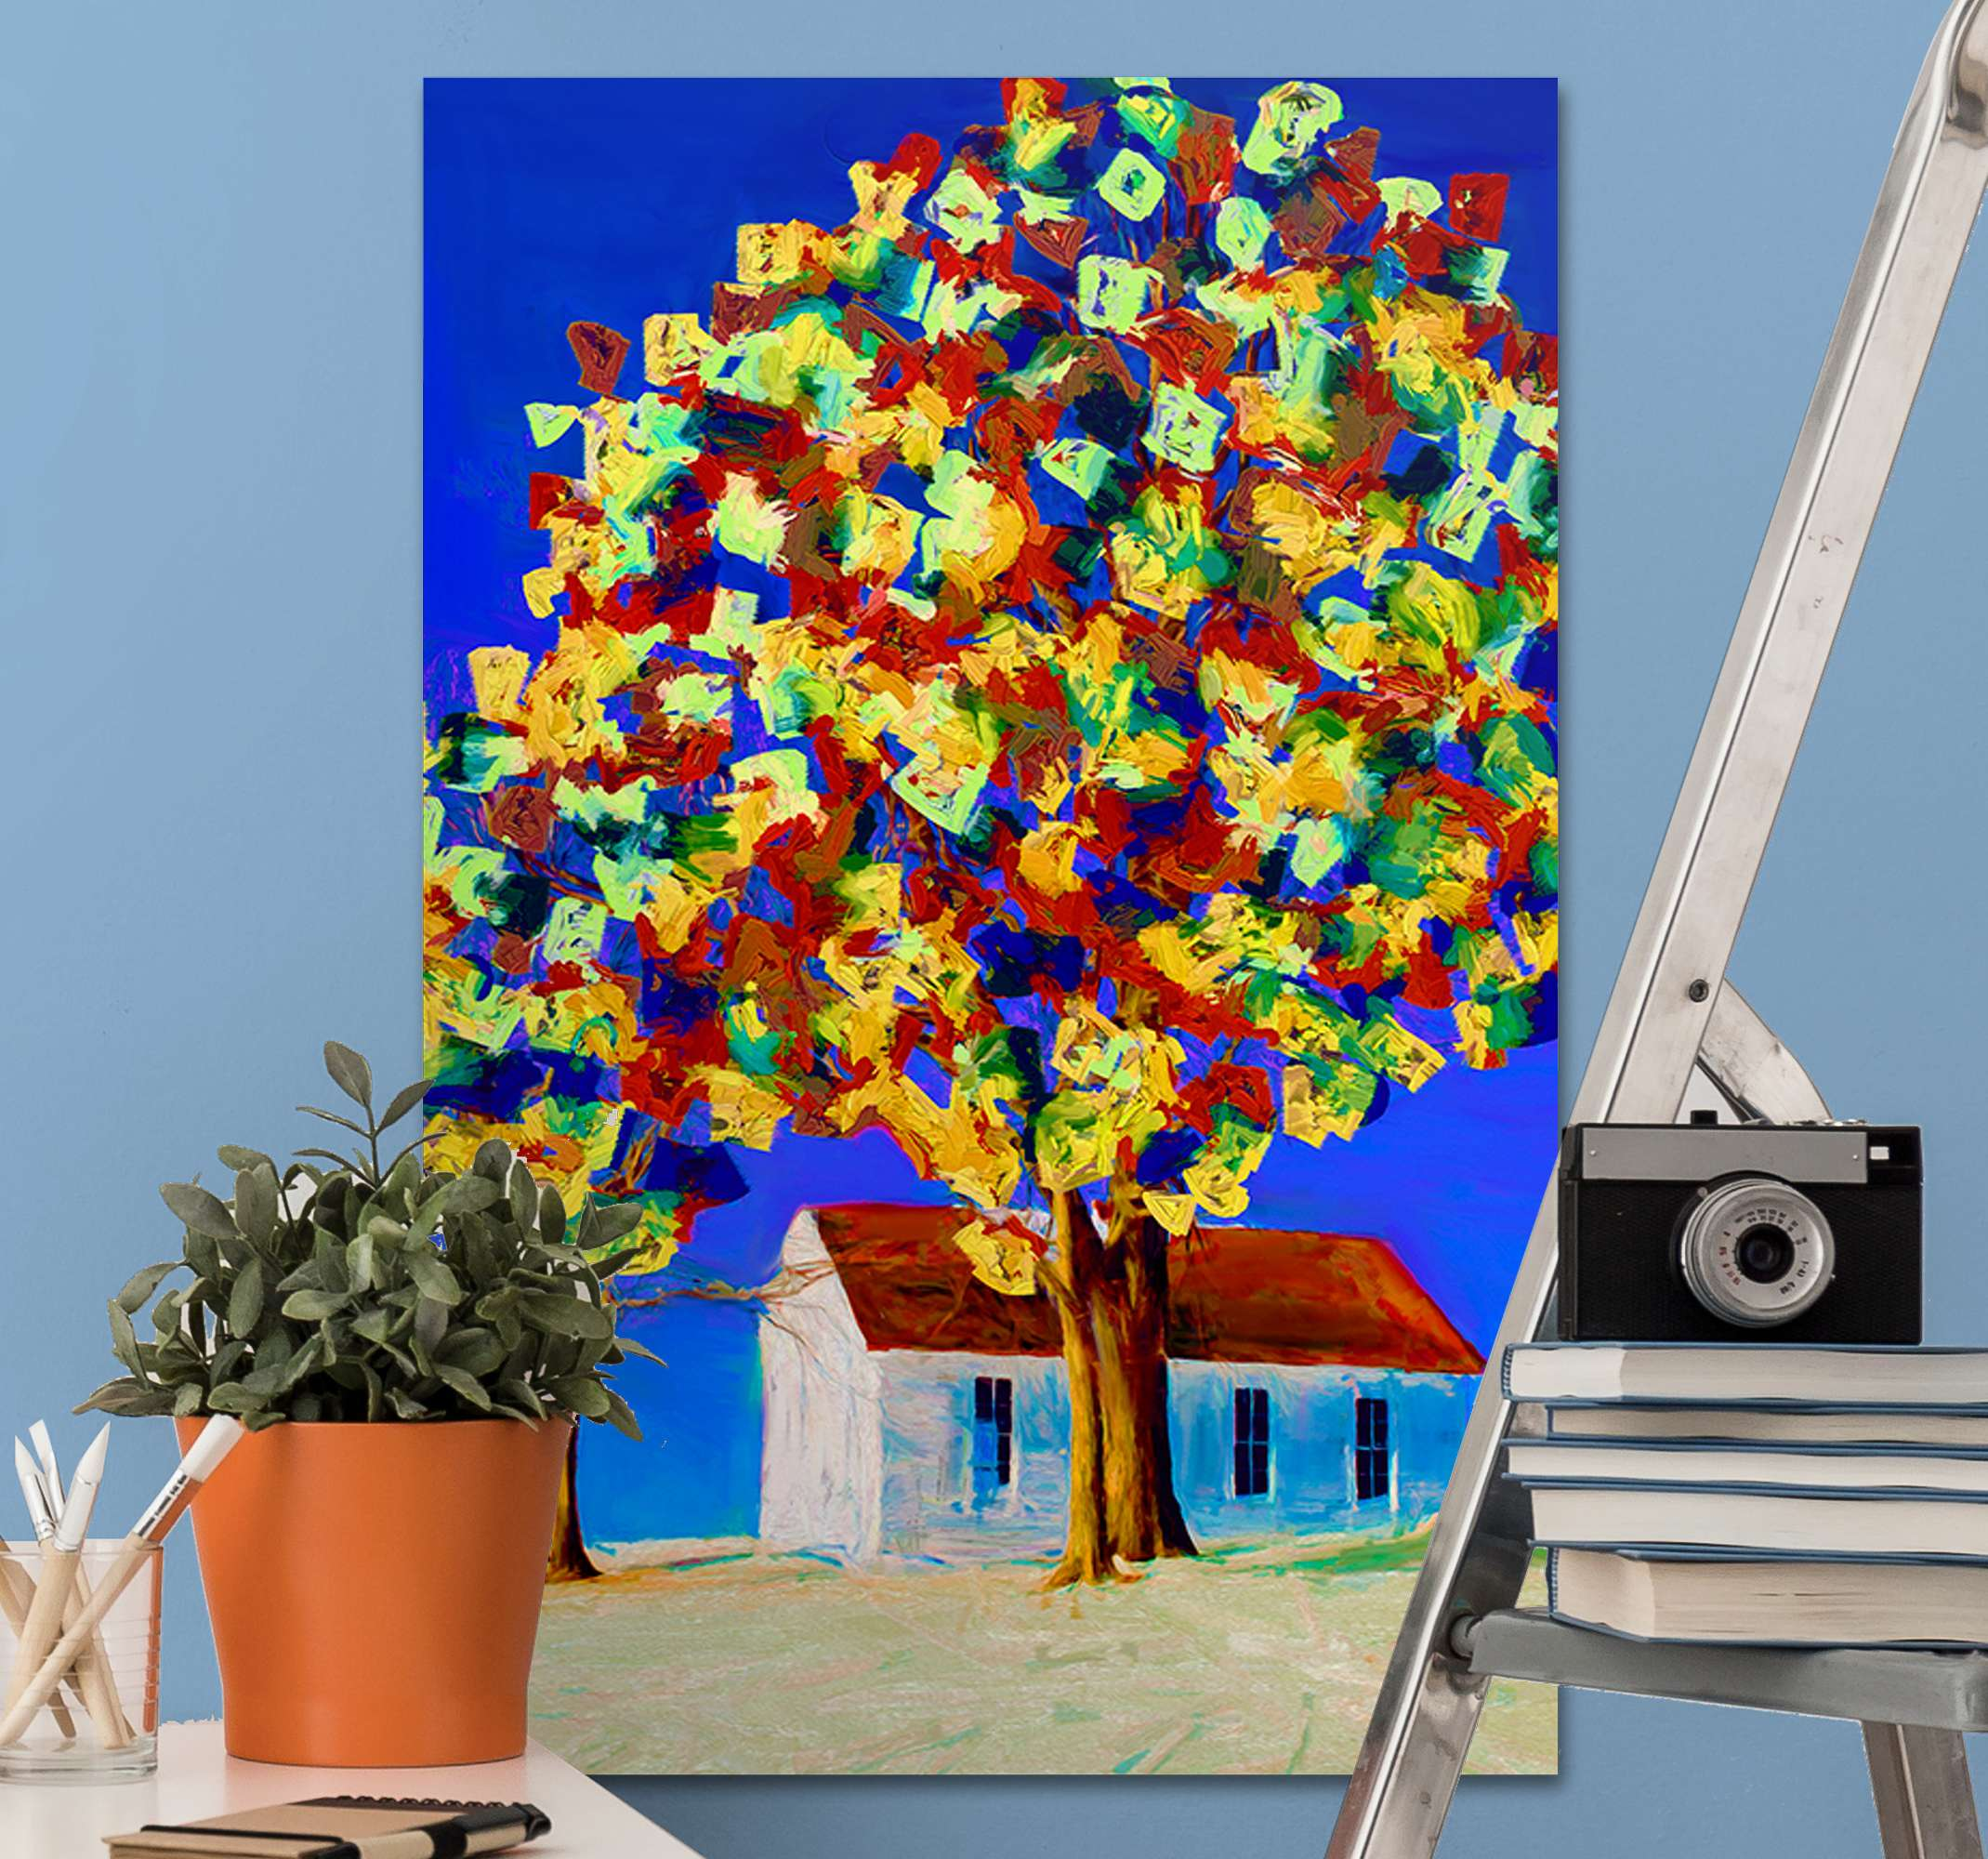 TenStickers. elegantes arbol primaveral sophisticated canvas prints. An awesome tree canvas wall art scenery to hung up anywhere in your home. With over 10,000 satisfied customers you are in safe hands.